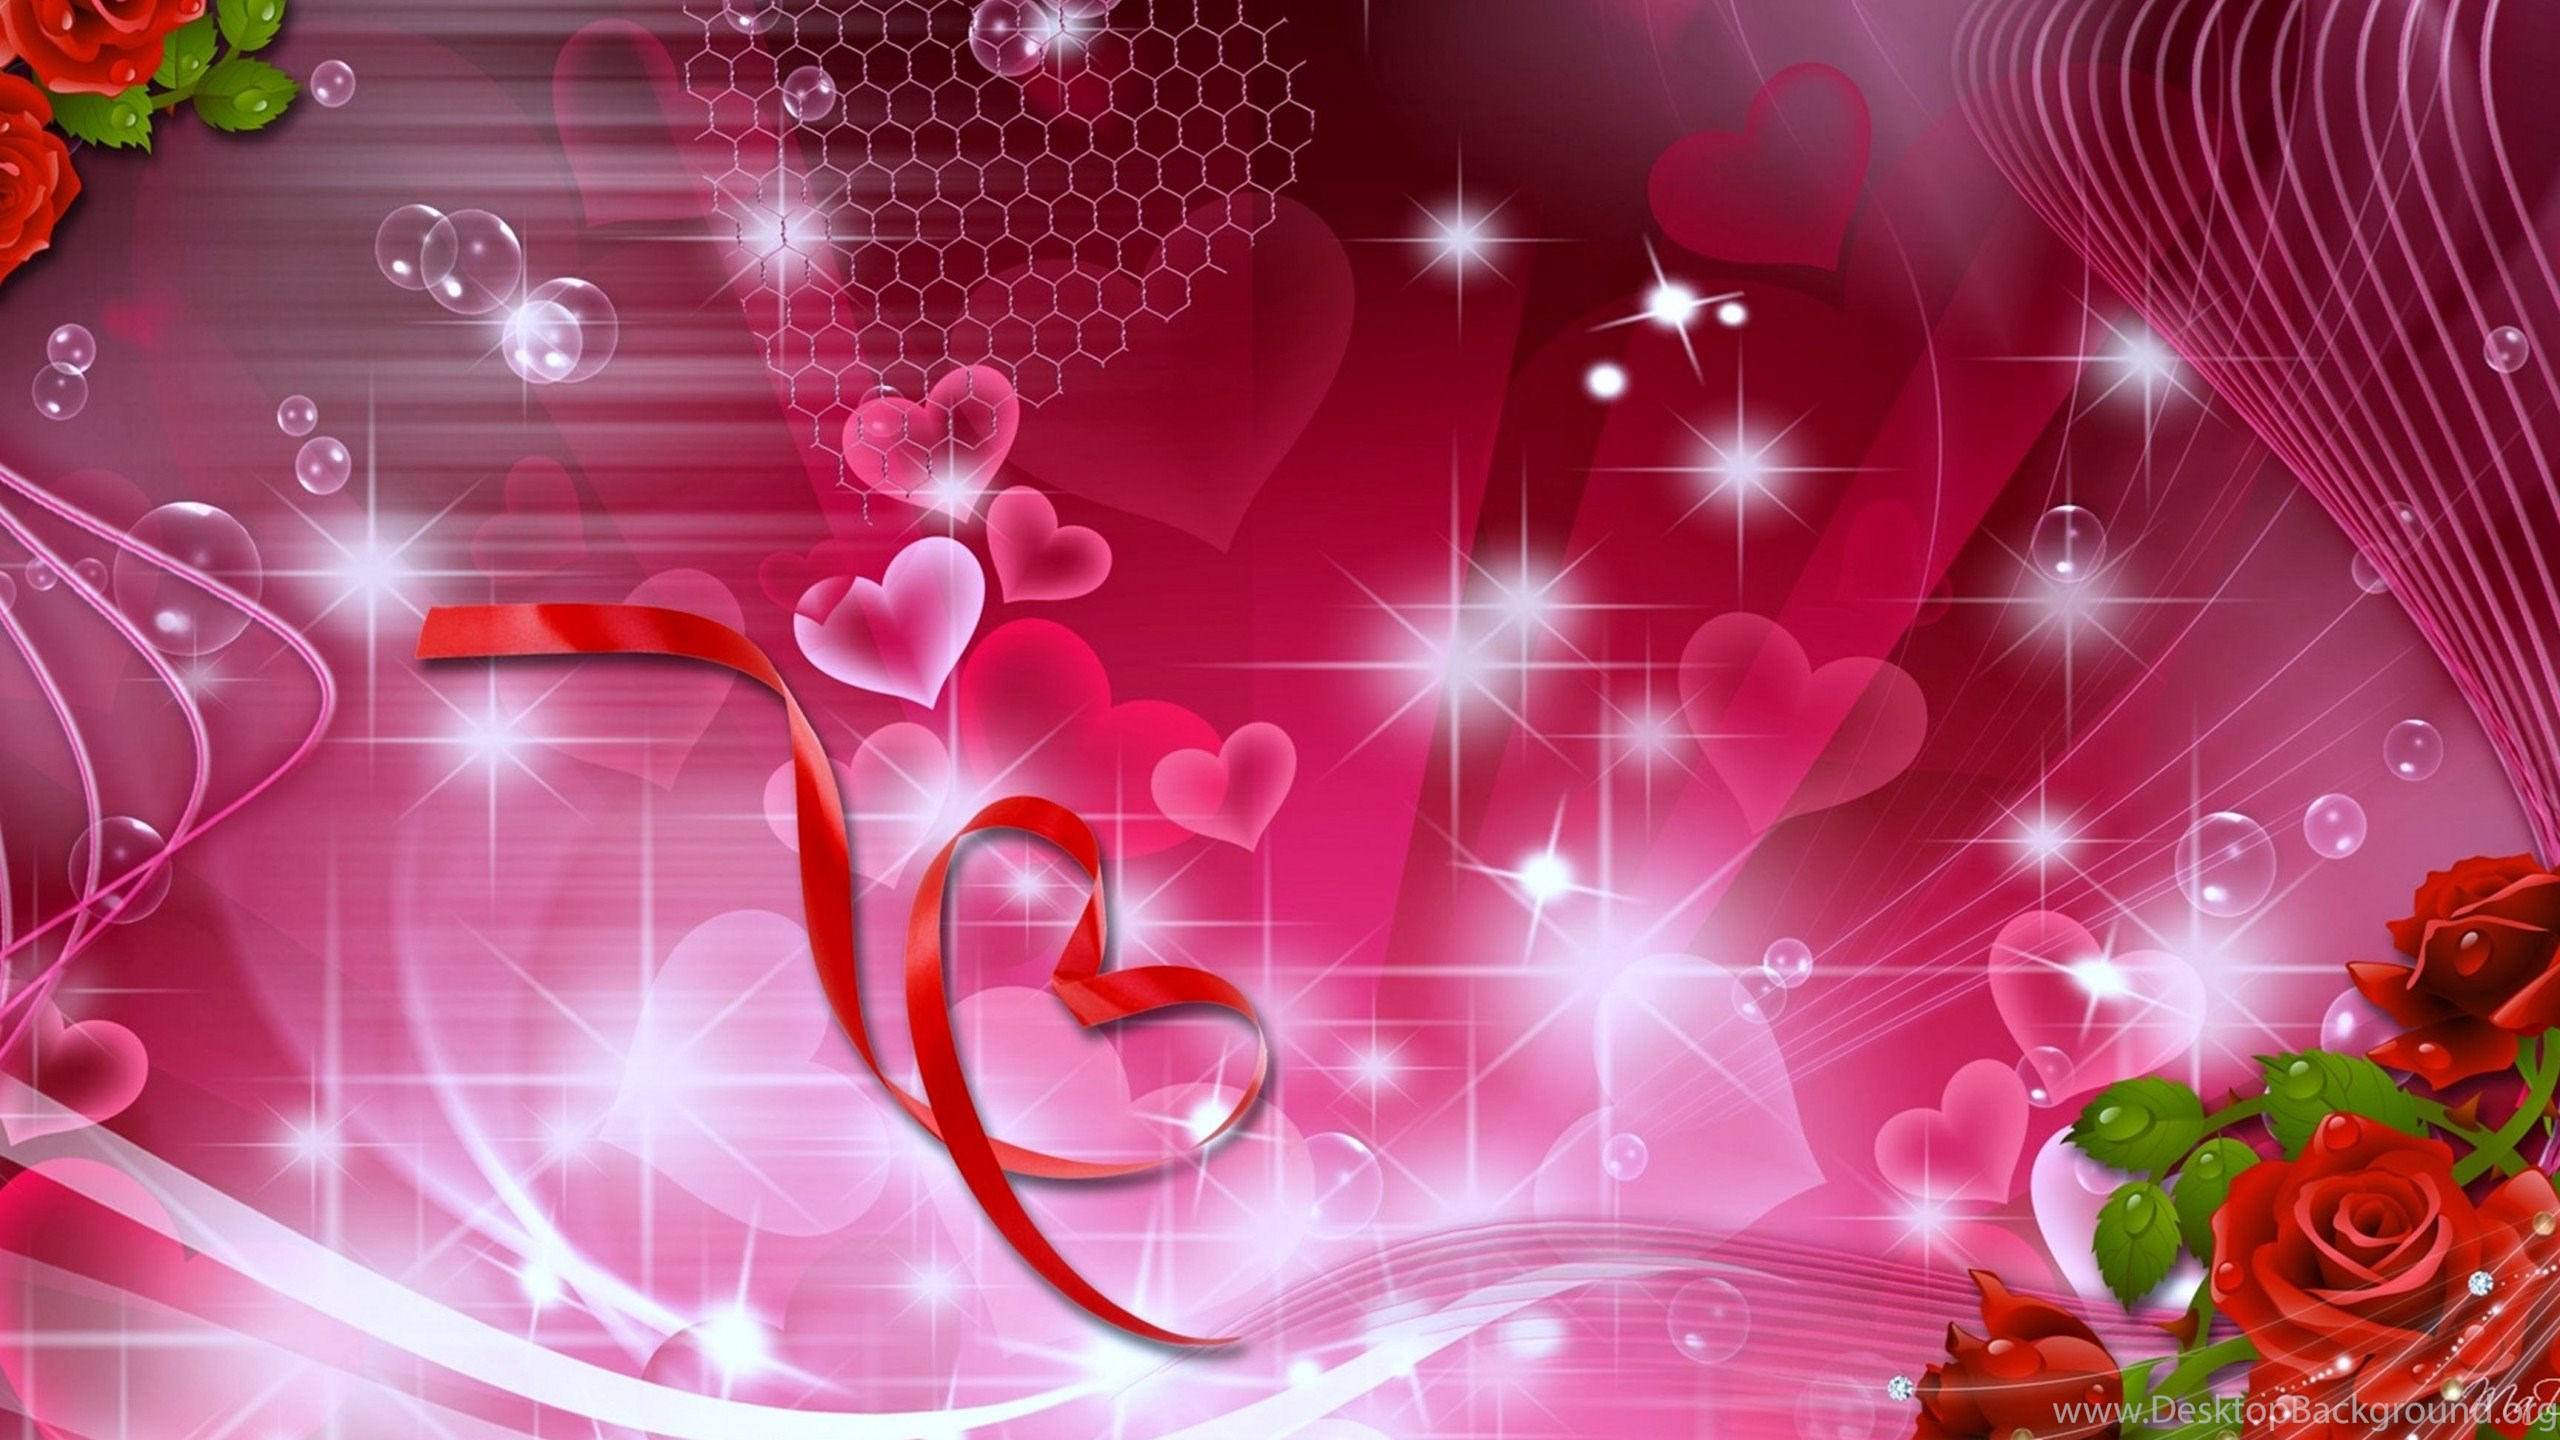 Colorful Hearts Wallpapers HD Download For Desktop Mobile